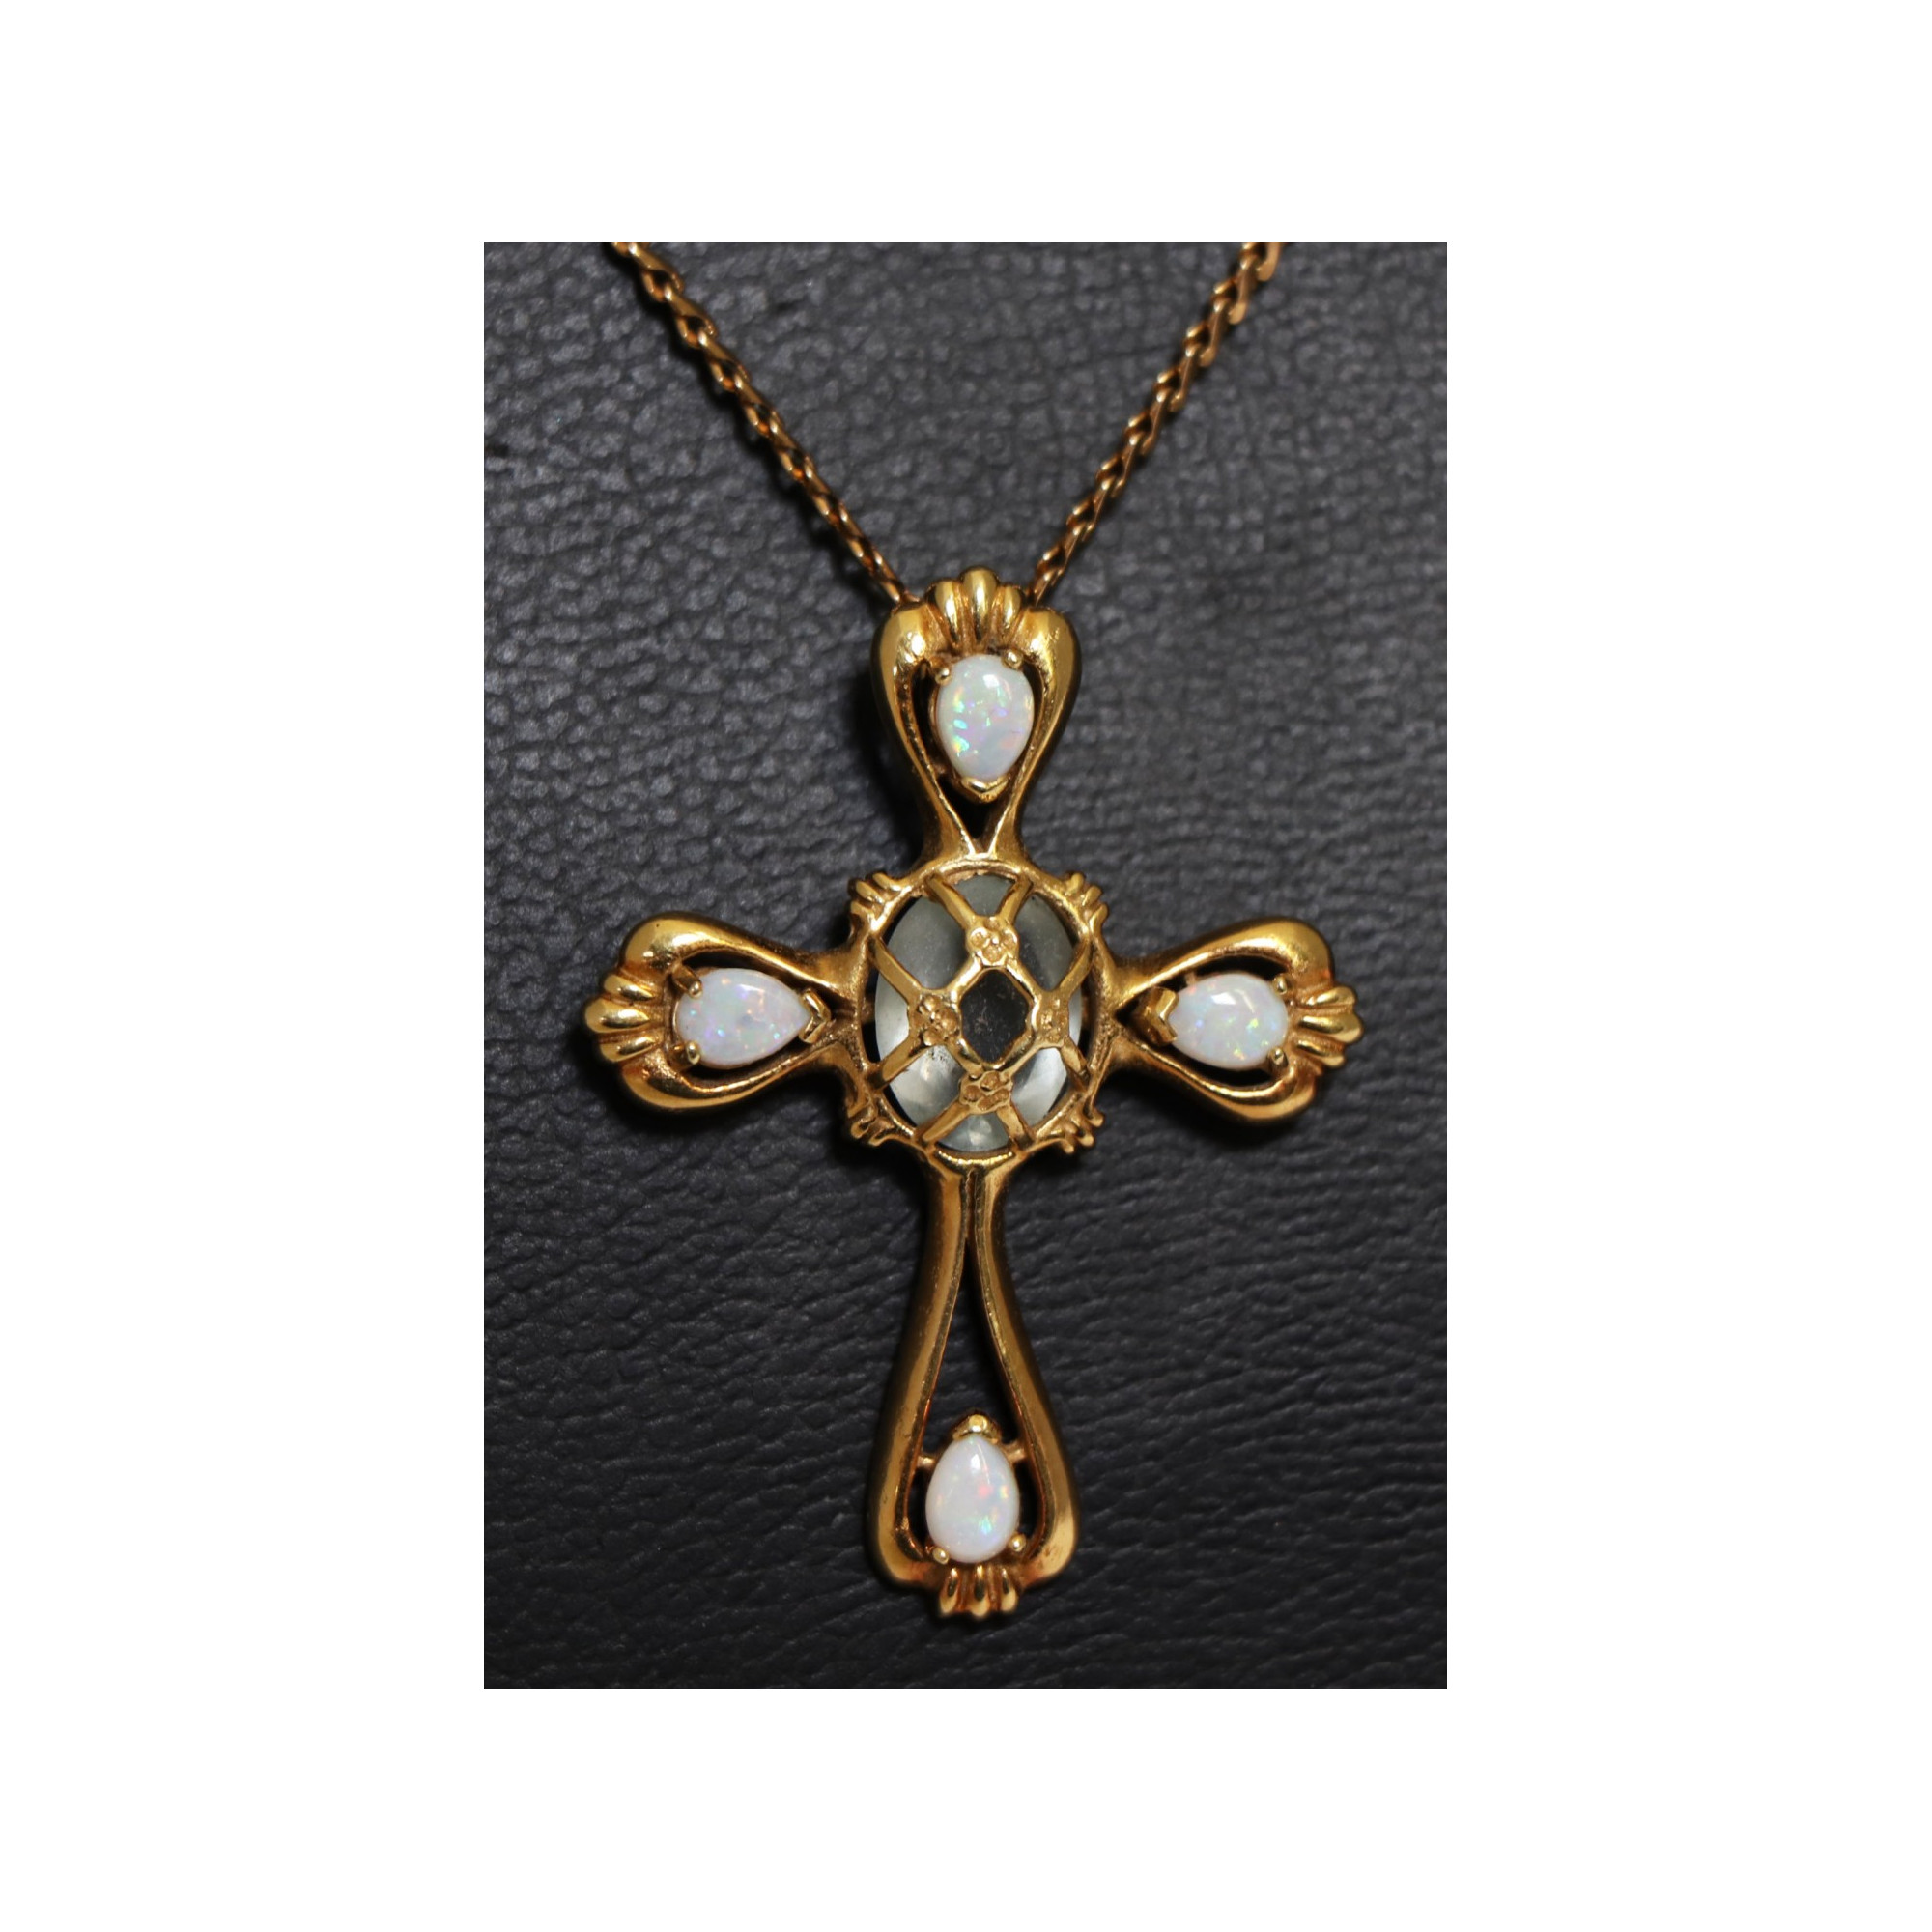 Cross and Chain in 18K Gold Opal 14 GR BRUT